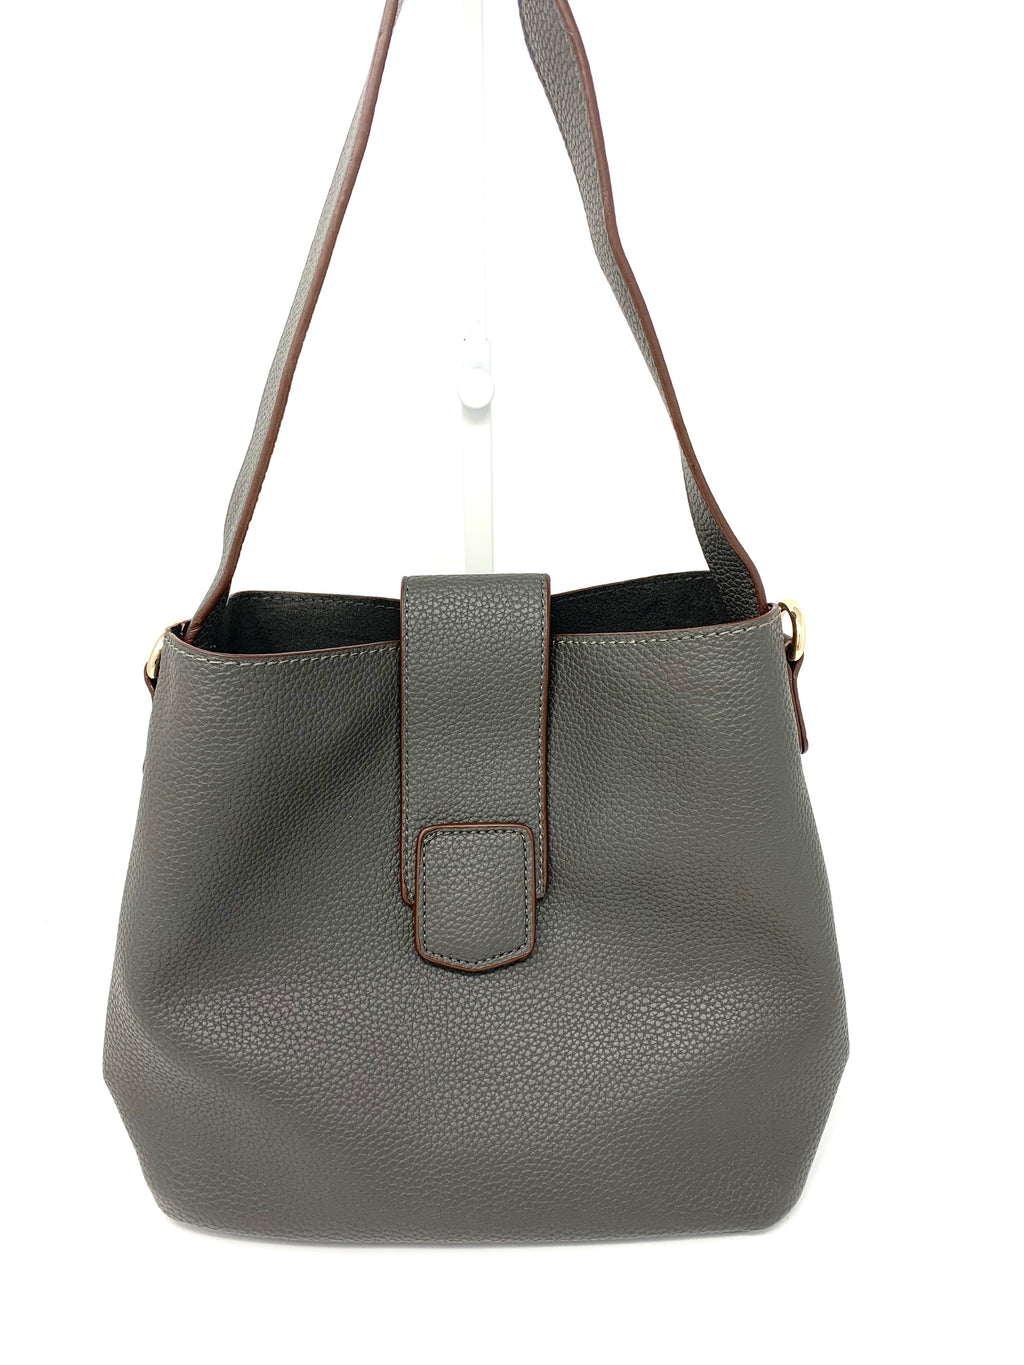 Medium Bucket Bag with Flap Closure in Dark Grey